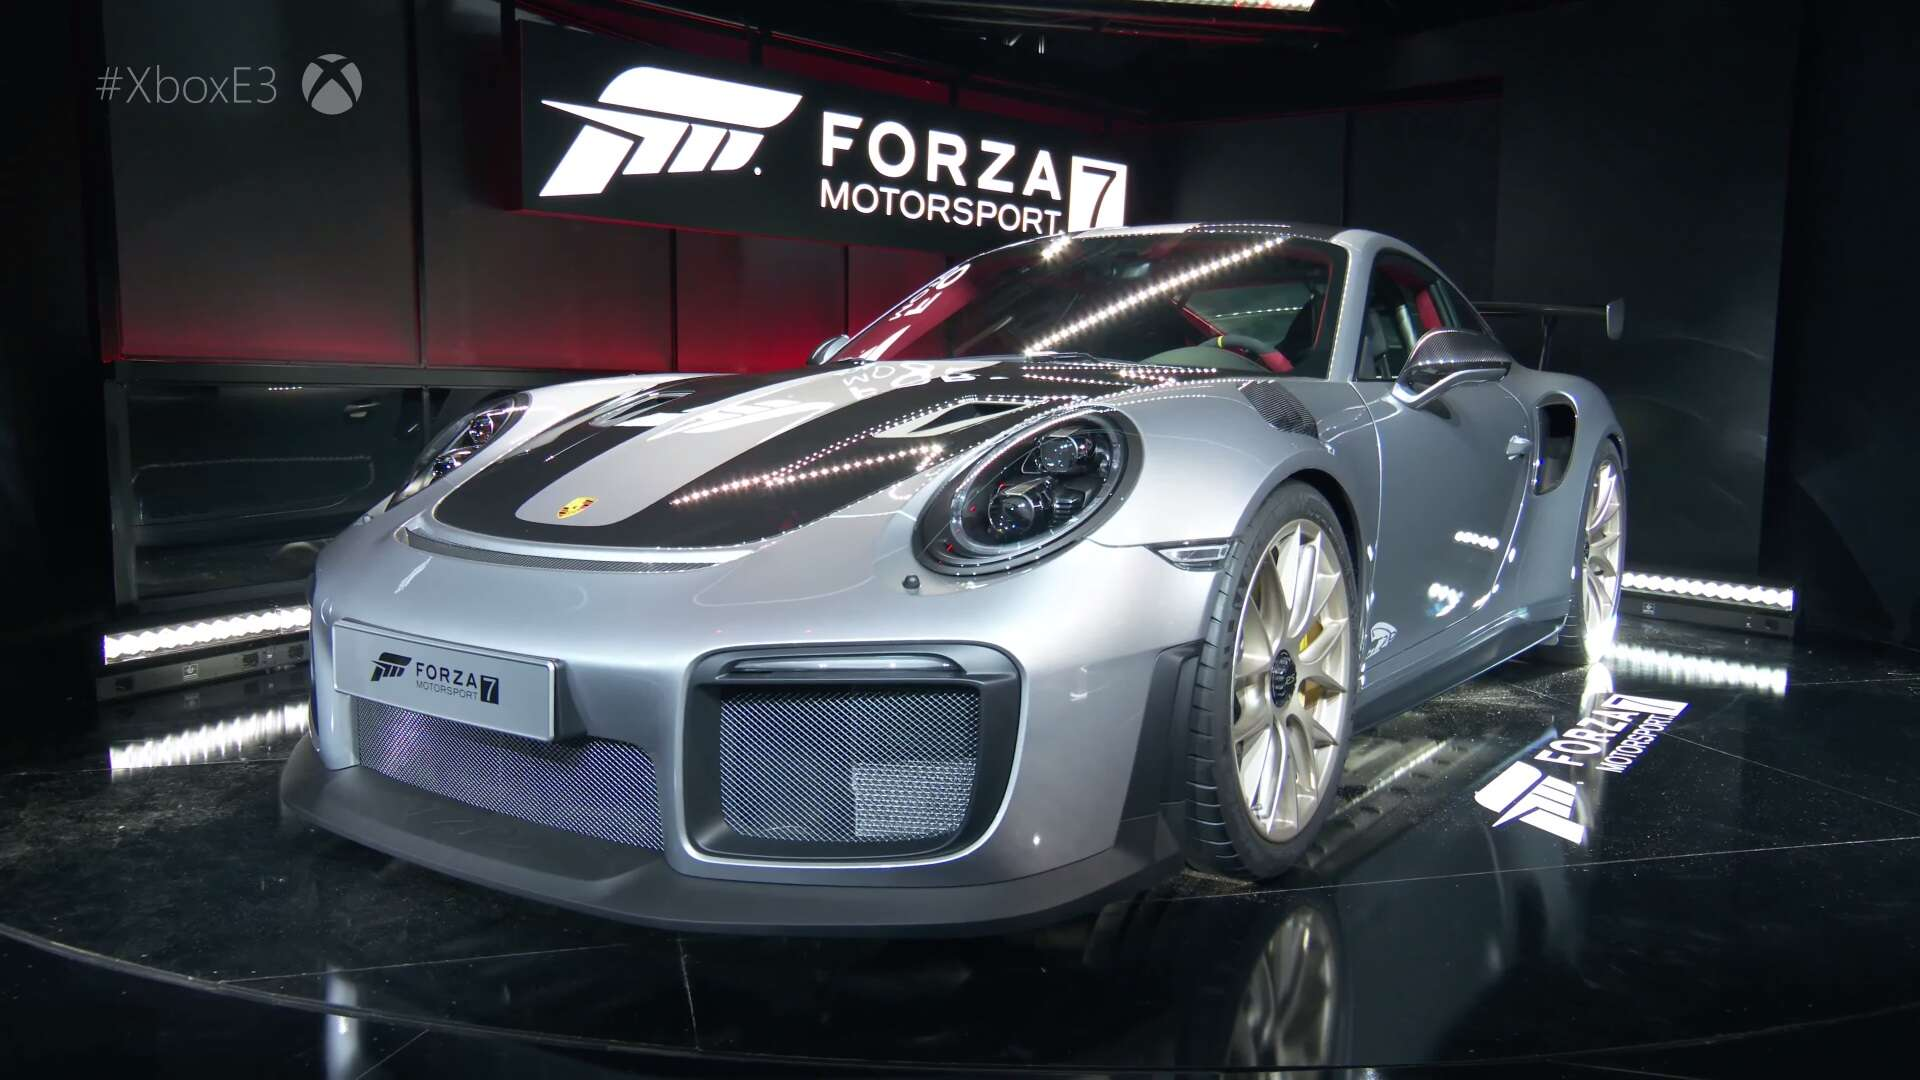 2018 porsche 911 gt2 rs revealed along with forza motorsport 7 the drive. Black Bedroom Furniture Sets. Home Design Ideas